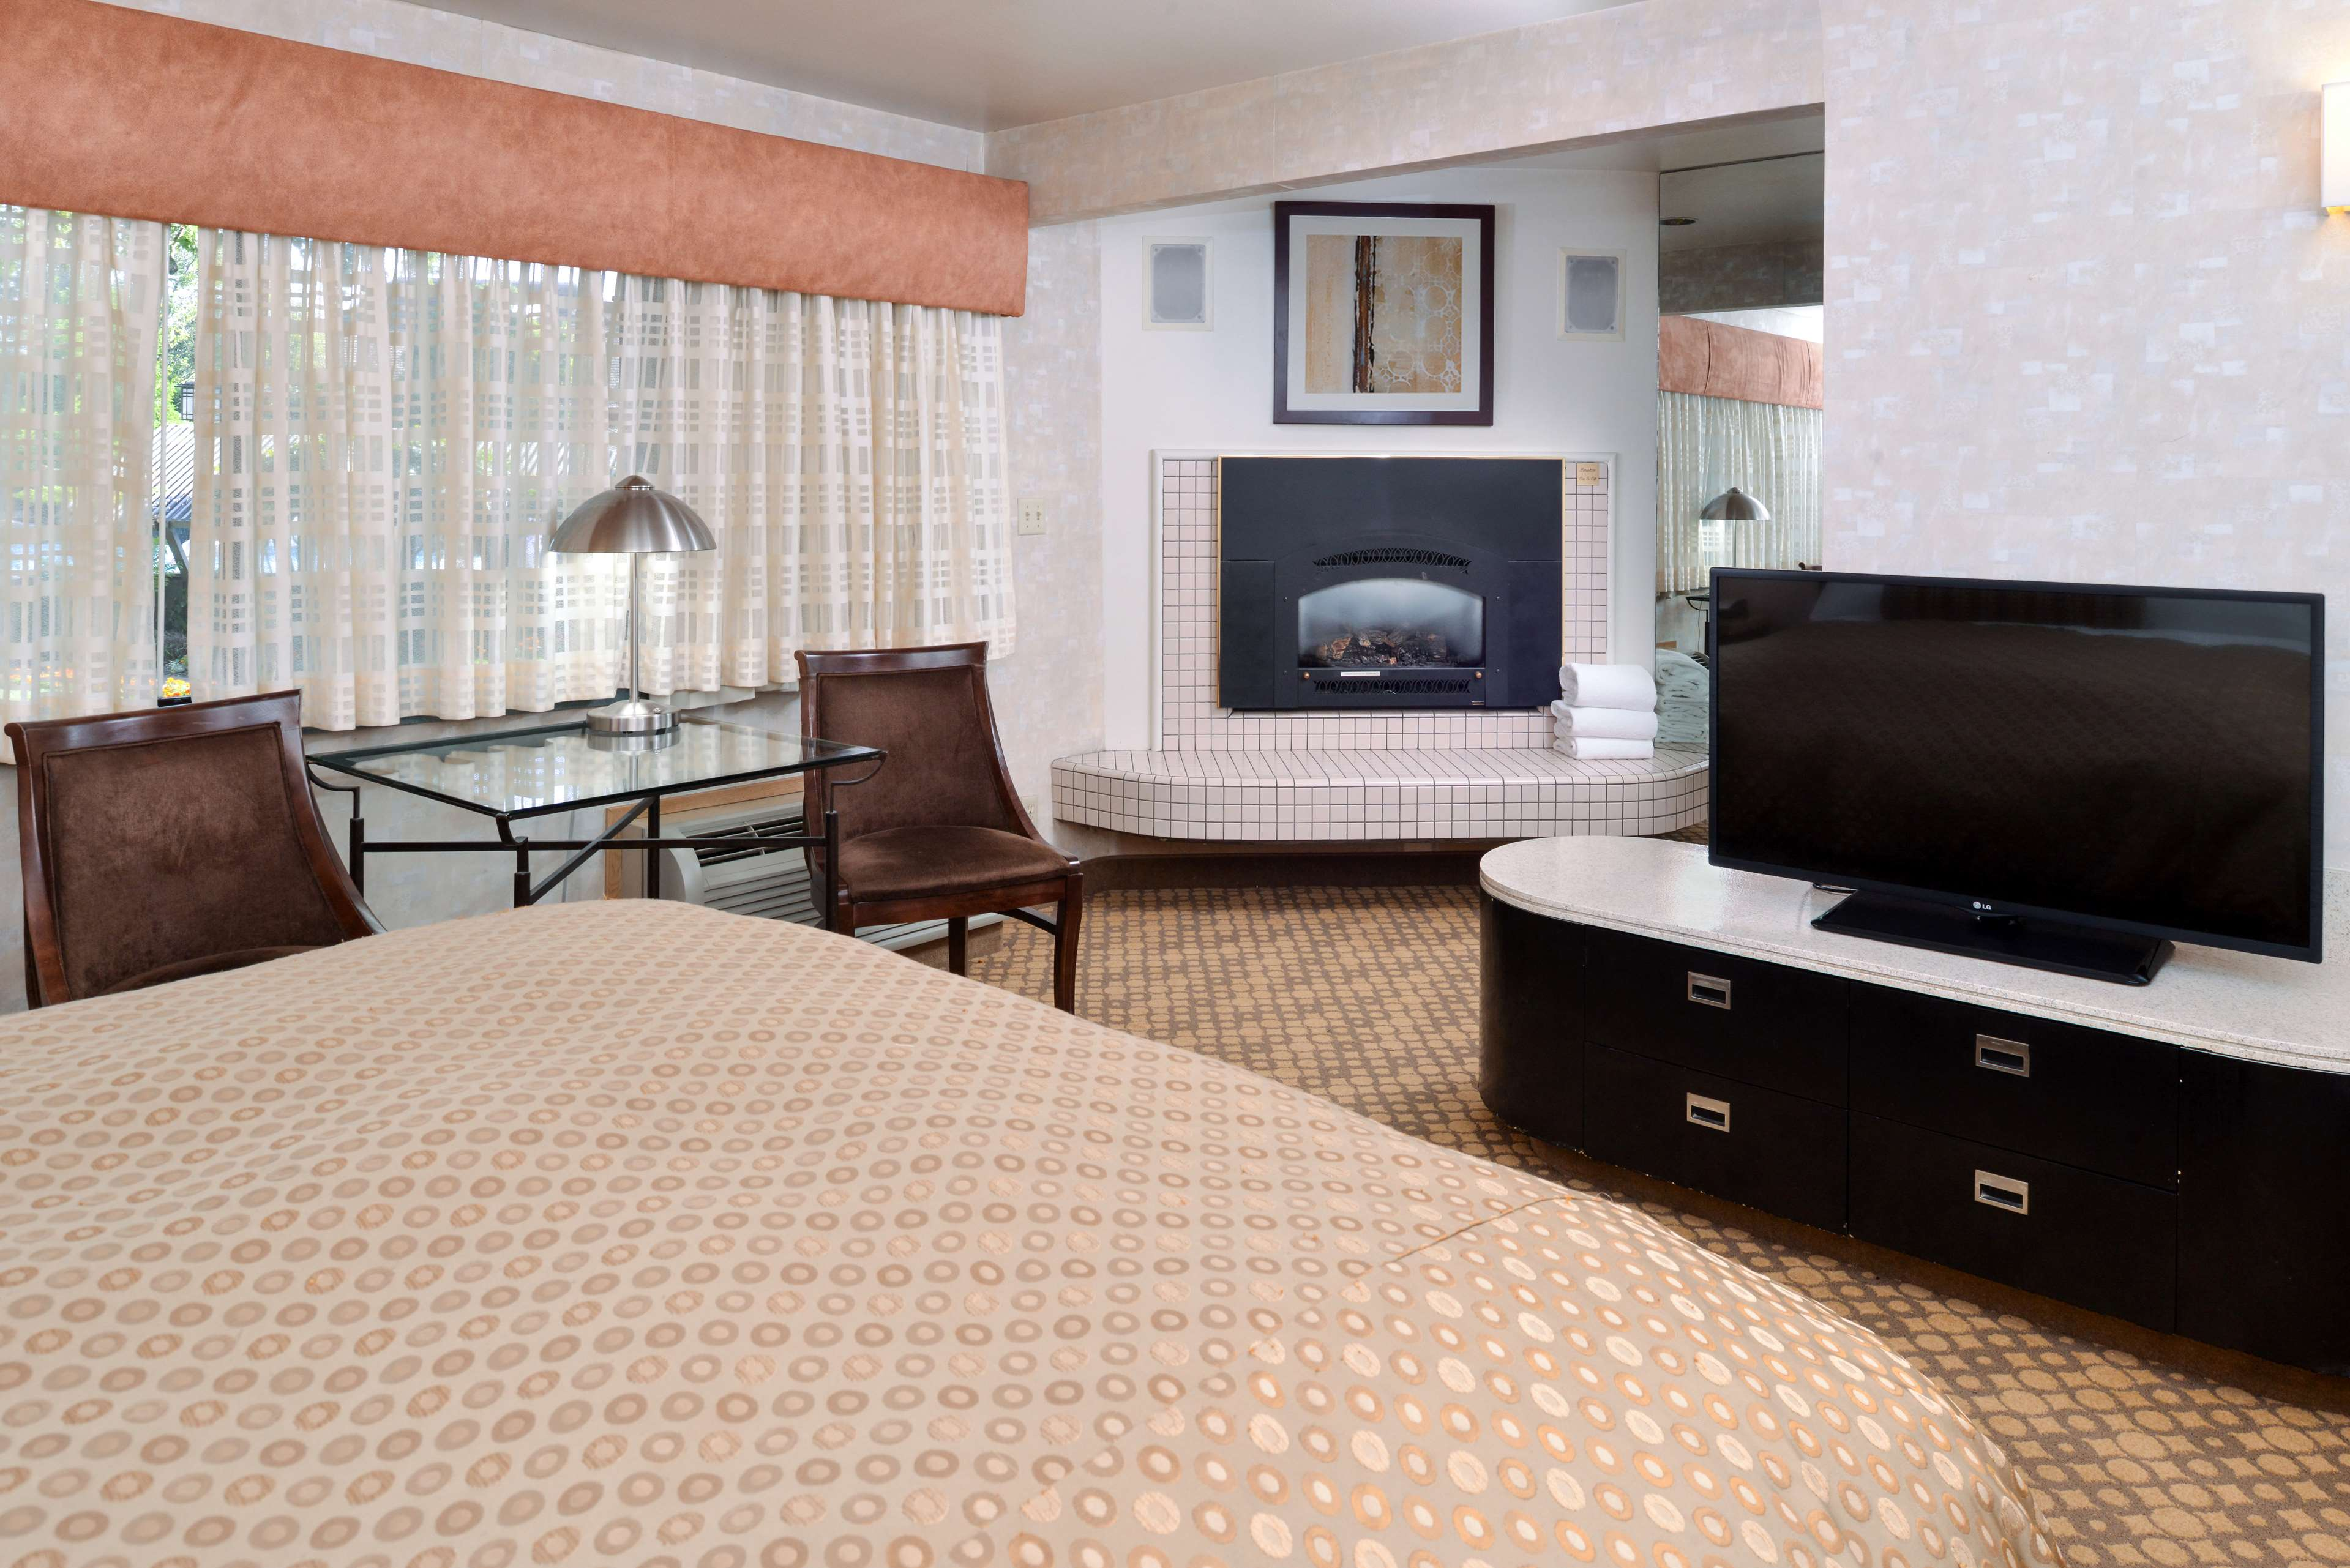 King Guest Room - Fireplace, Whirlpool